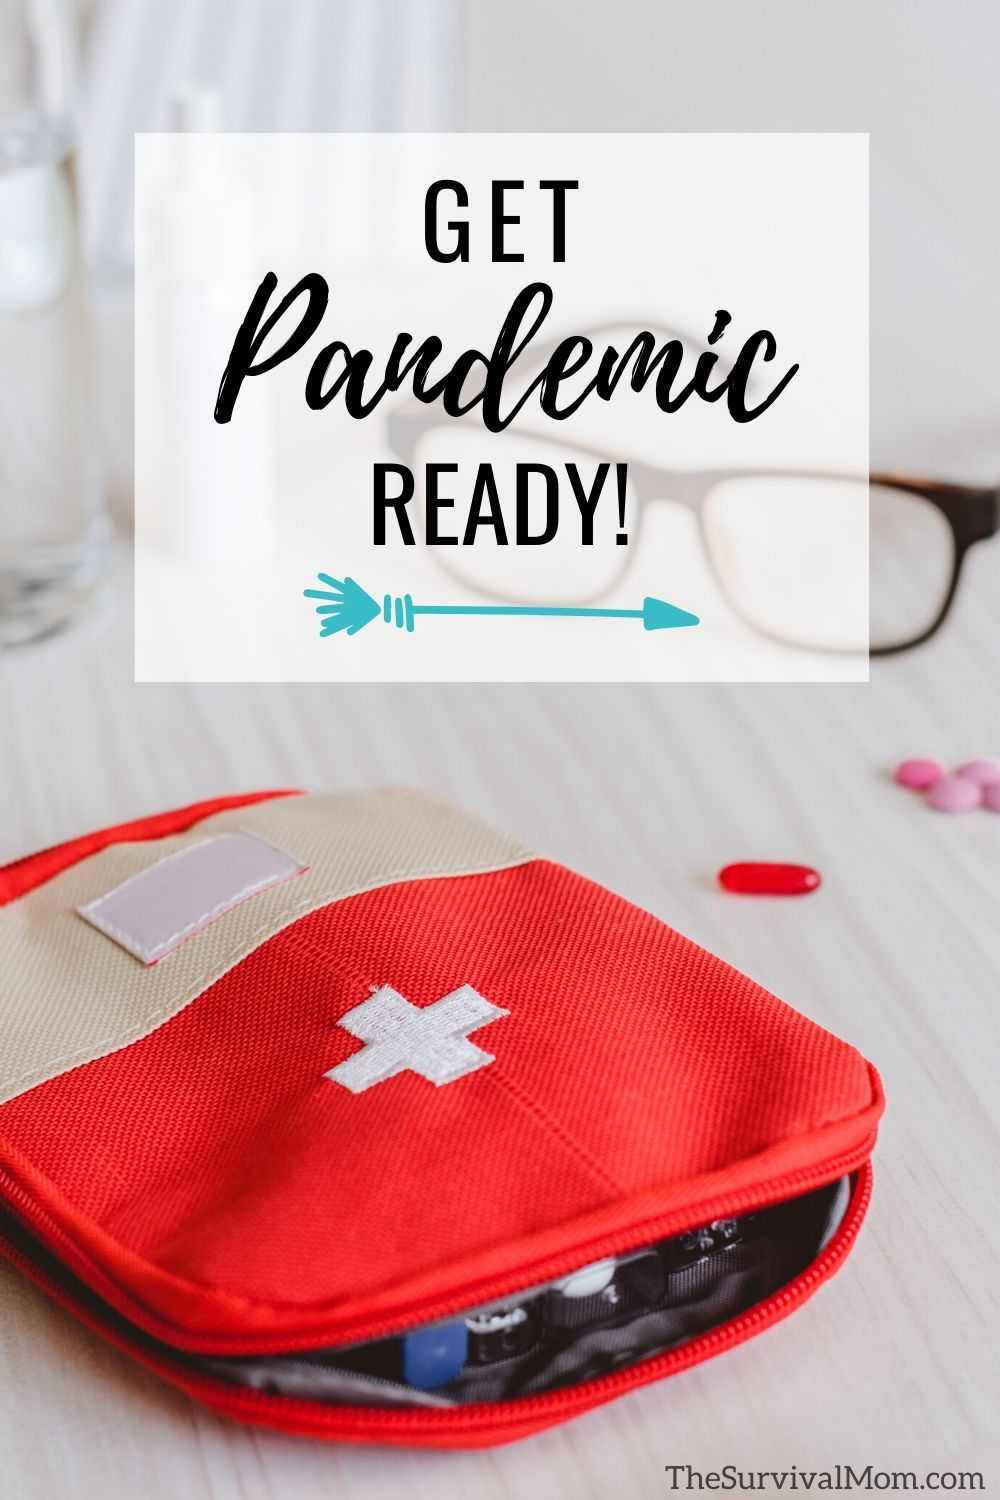 get pandemic ready, prepare for pandemic, how to prepare for a pandemic, coronavirus, covid-19, coronavirus pandemic